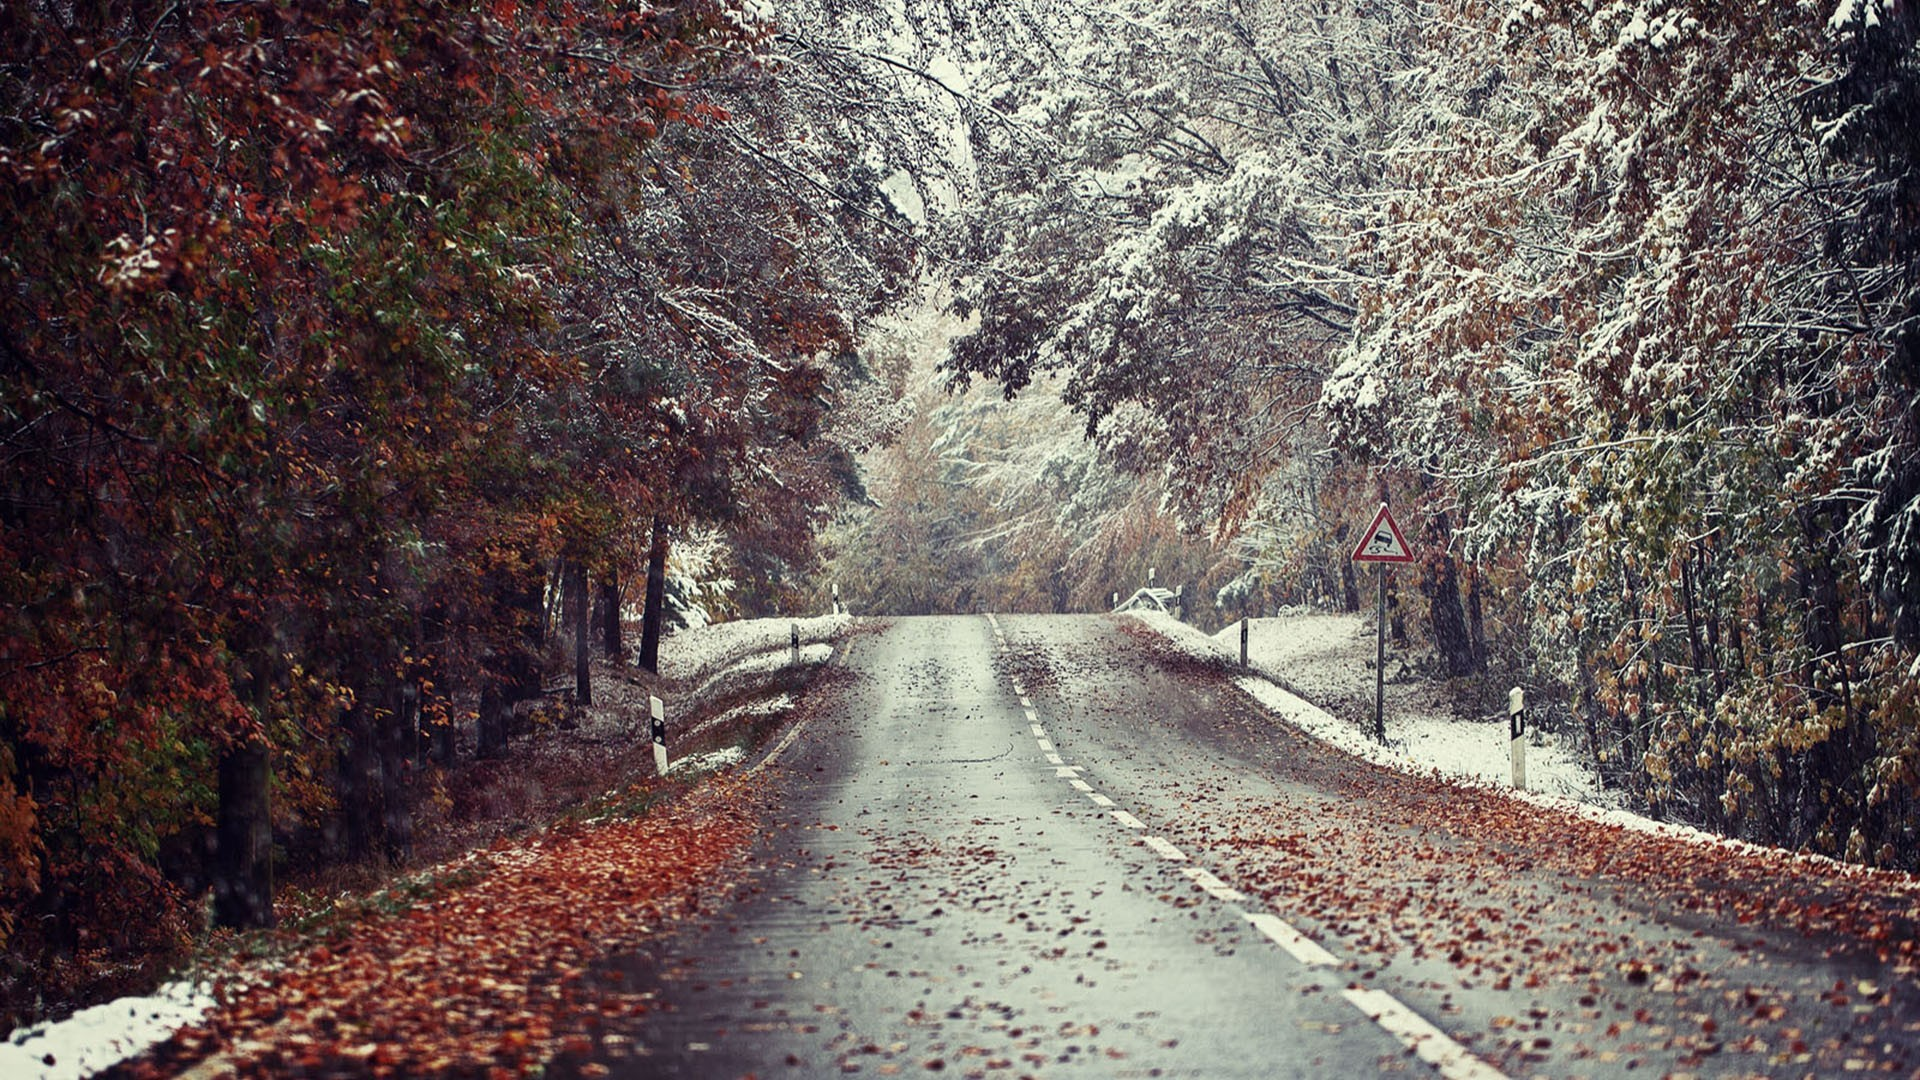 Cozy Fall Hd Wallpaper Meeting Of Winter And Autumn By The Roadside Wallpapers